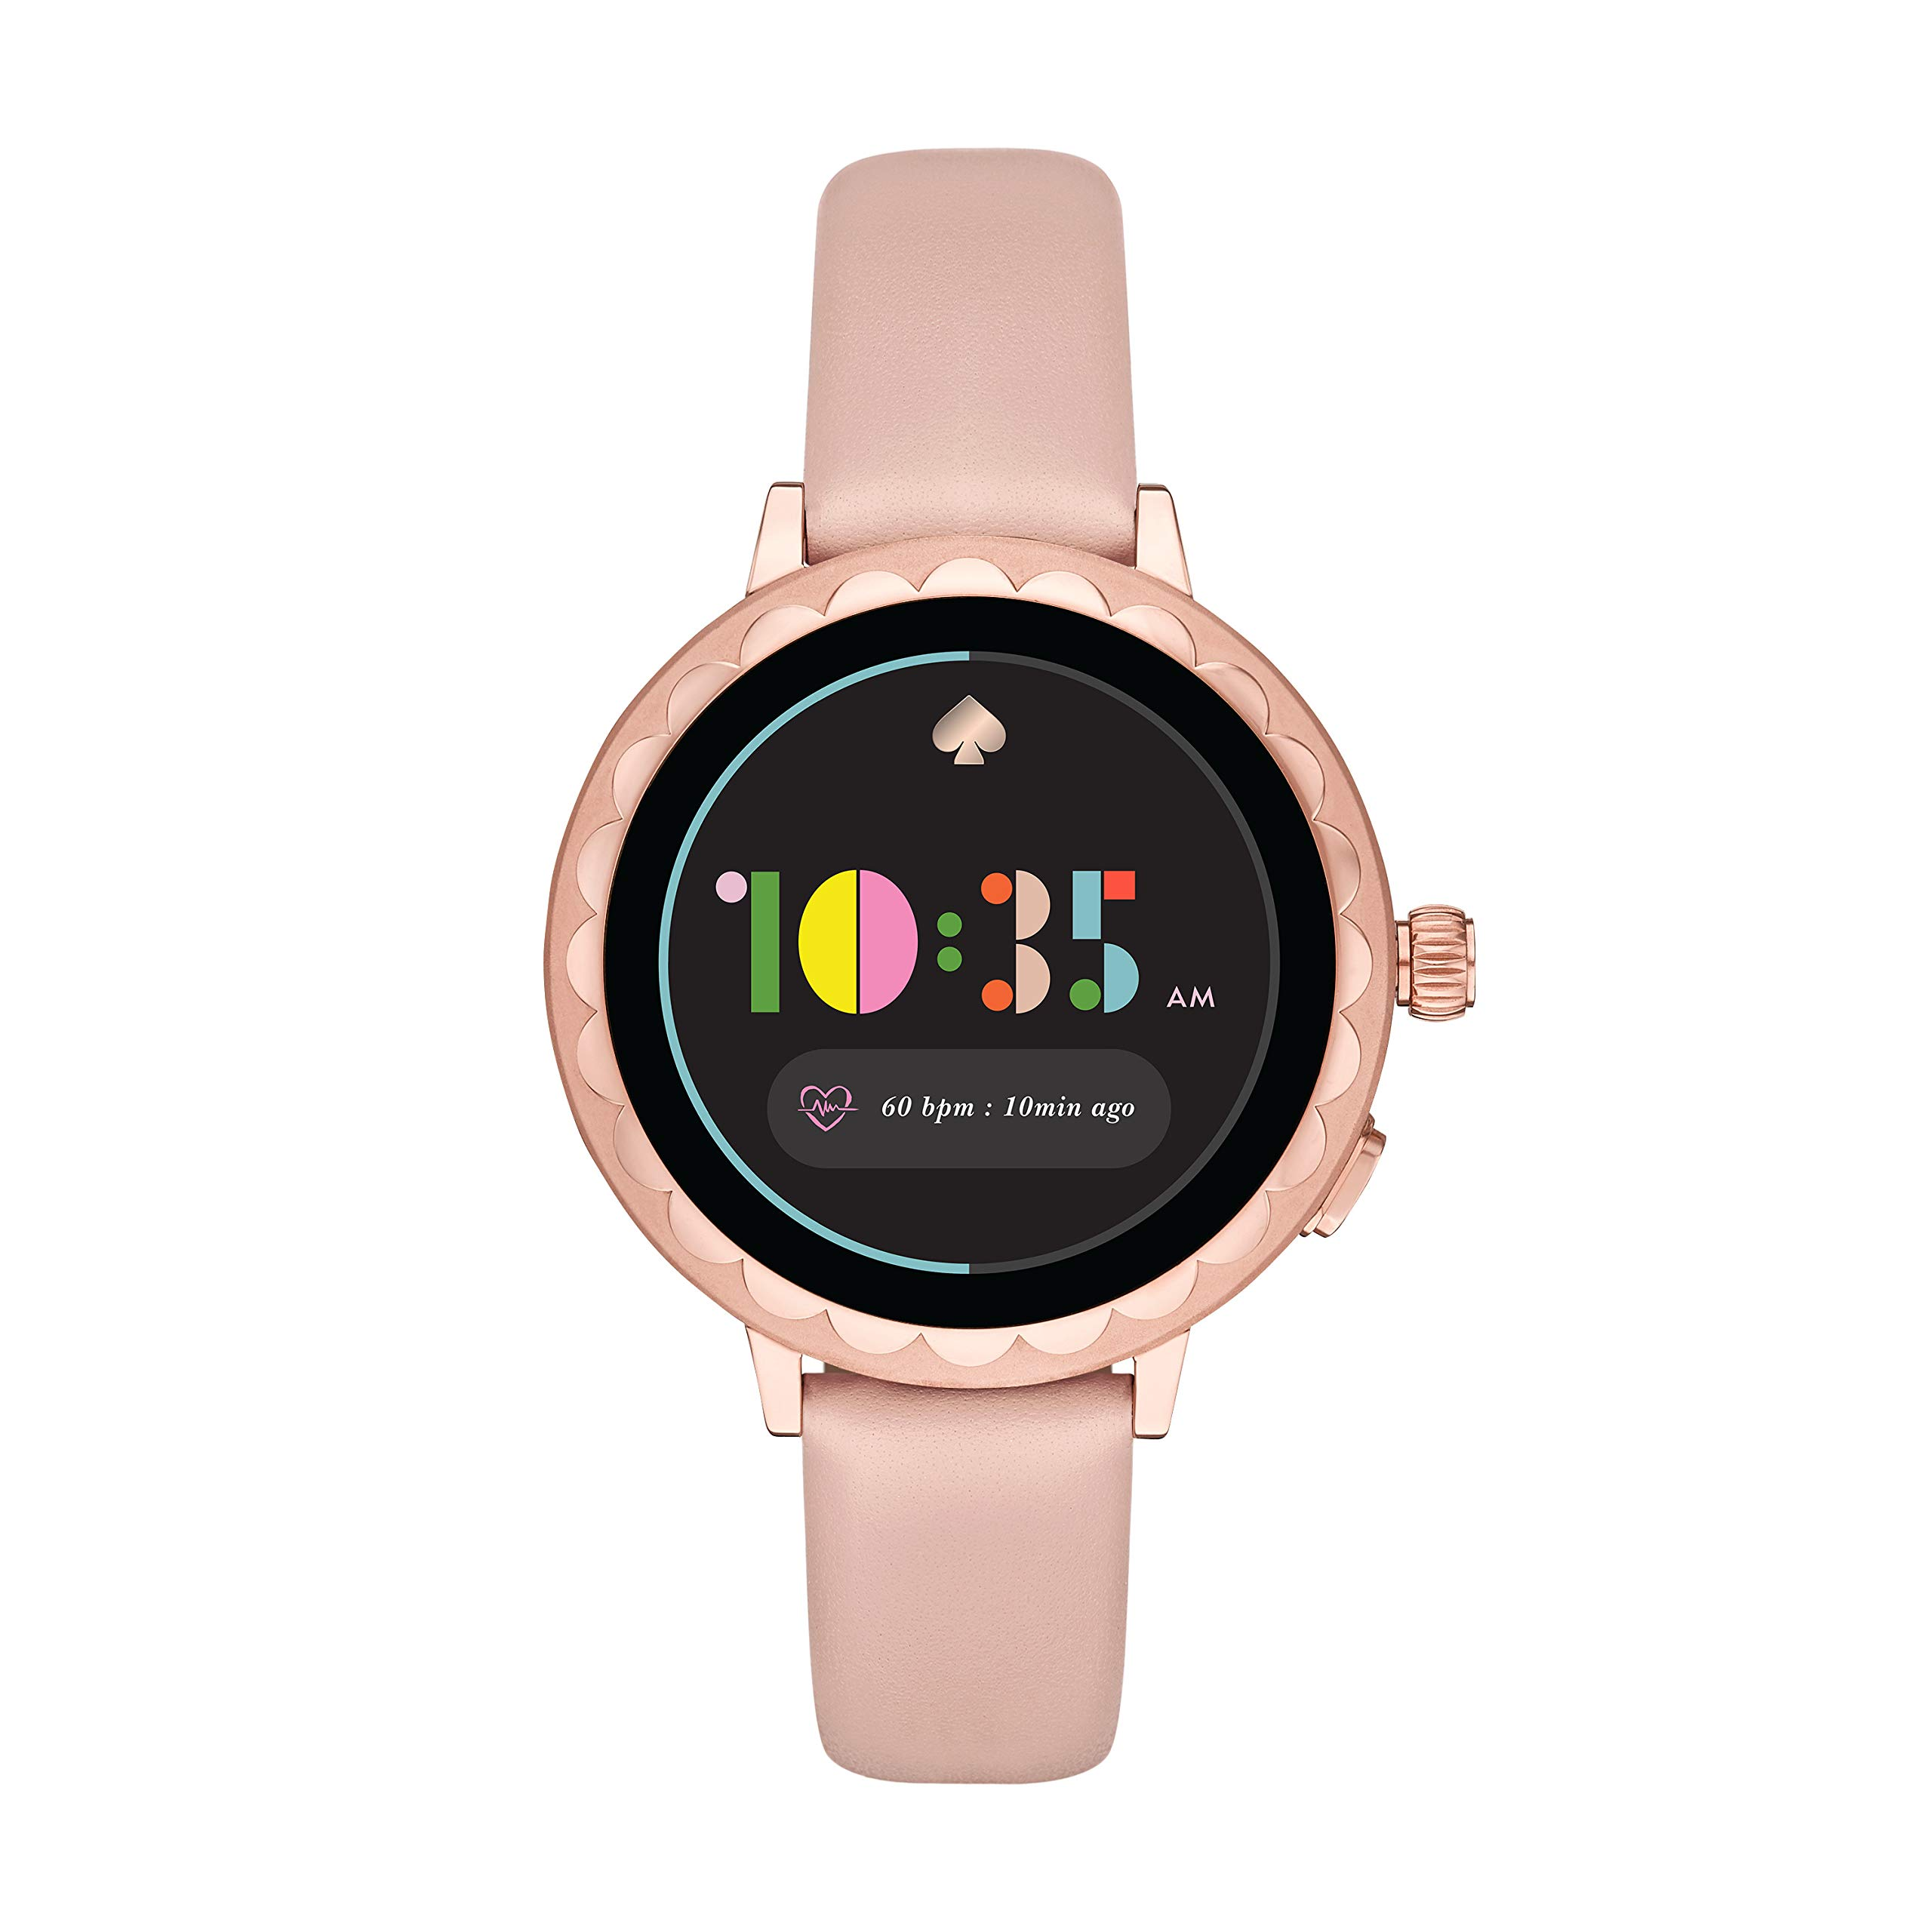 Kate Spade New York Women's Scallop 2 Stainless Steel Touchscreen smartwatch Watch with Leather Strap, Beige, 16 (Model: KST2009